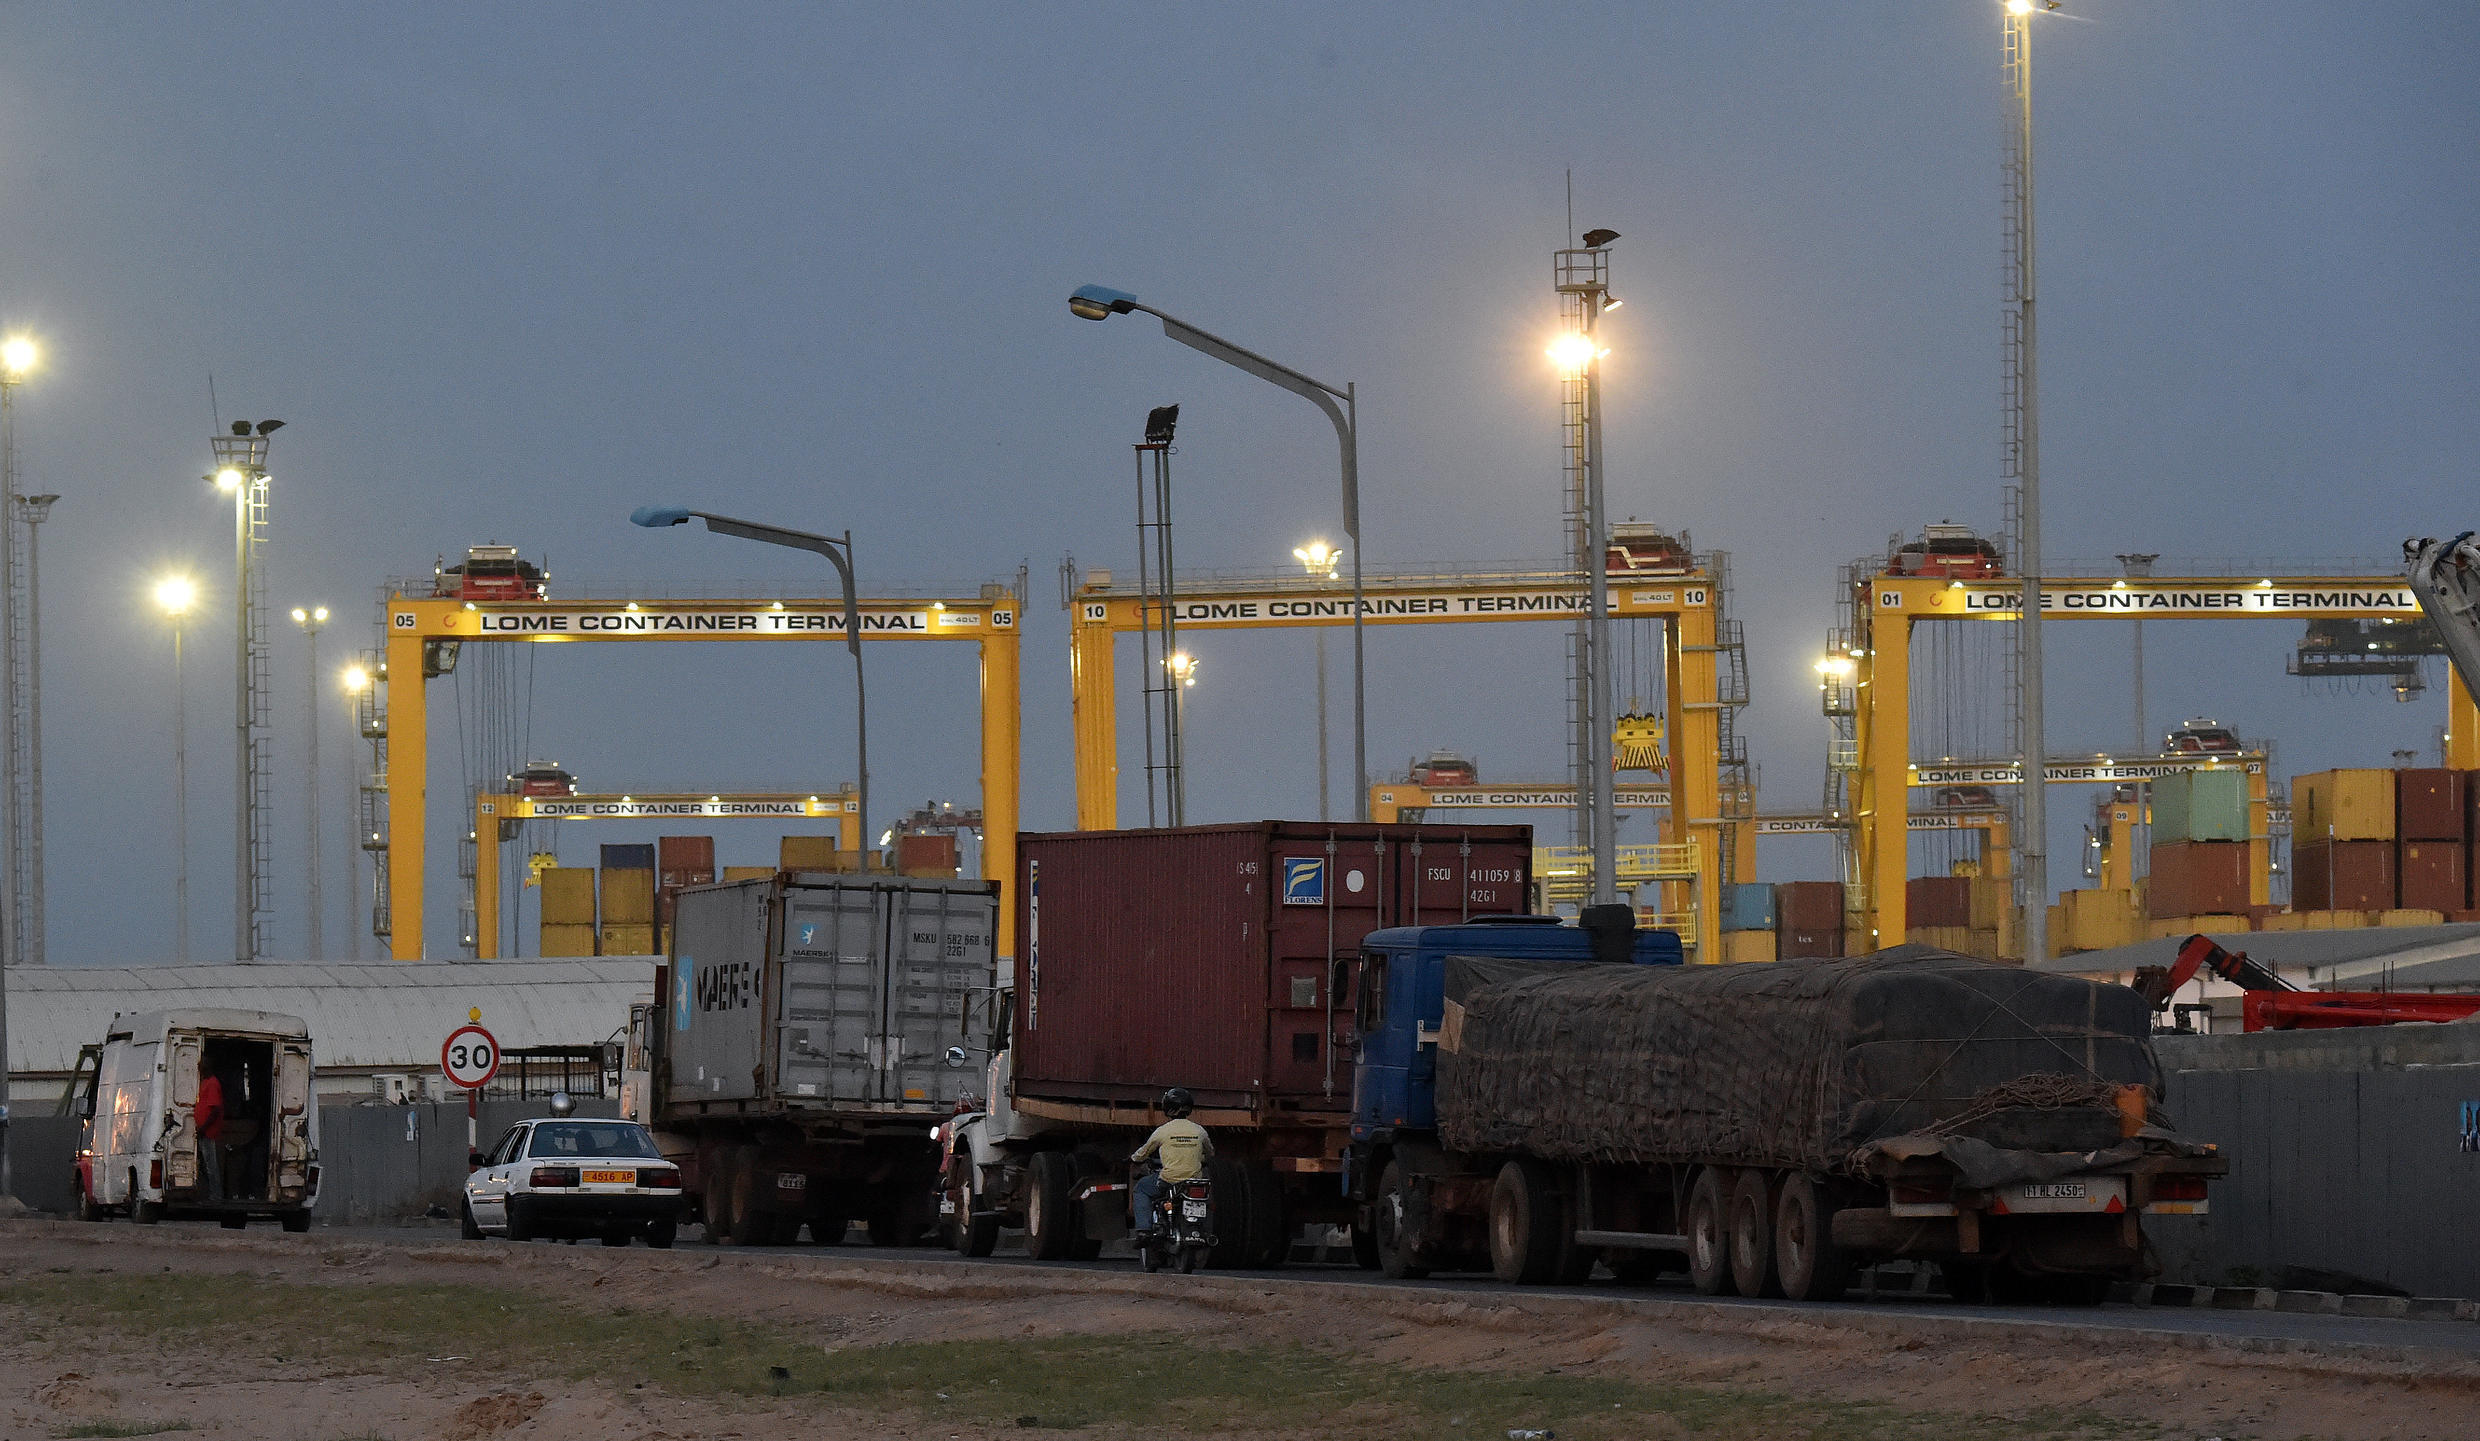 Bollore admitted it used corruption to win a Lome port contract